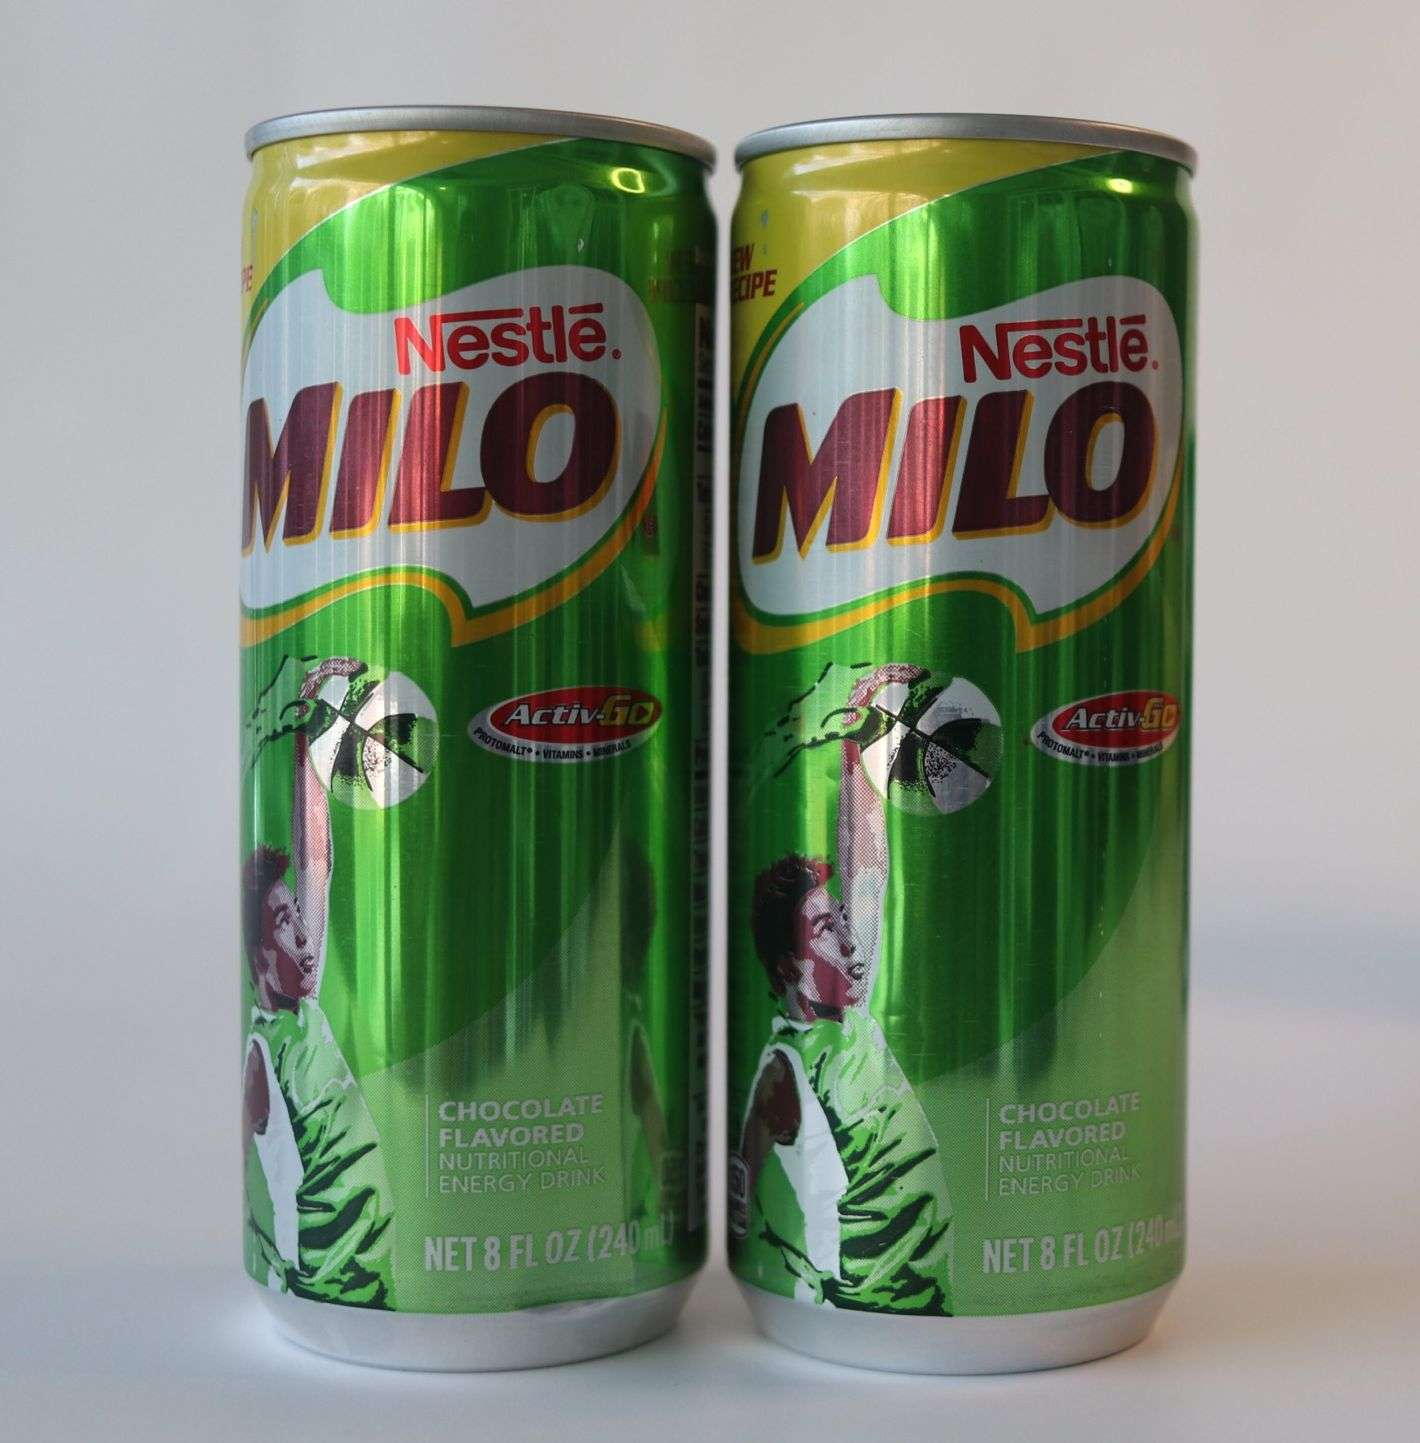 Milo Chocolate Flavored Canned Drink